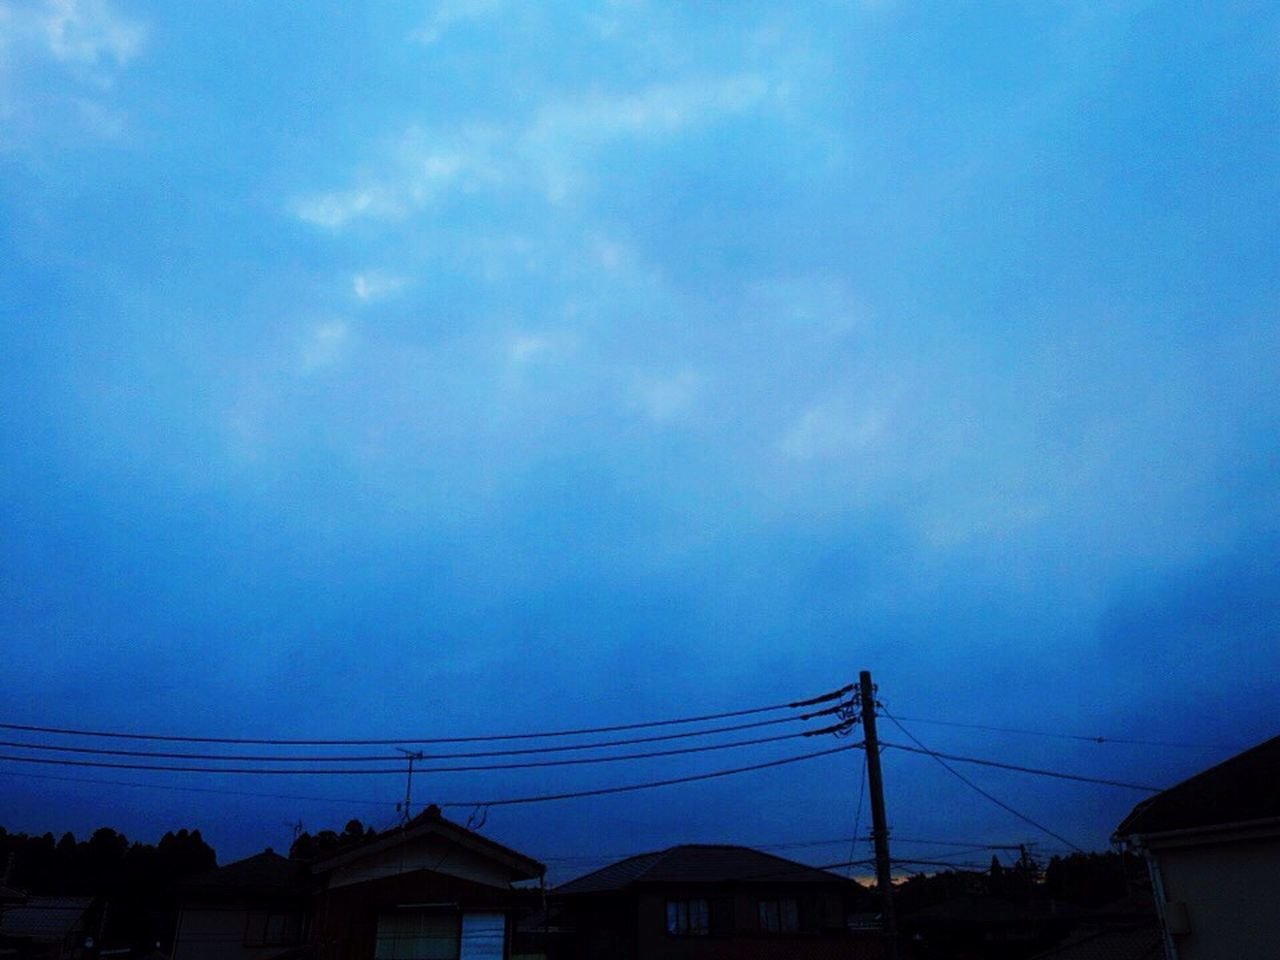 cable, cloud - sky, sky, connection, power line, no people, electricity, low angle view, power supply, silhouette, built structure, outdoors, blue, electricity pylon, building exterior, architecture, nature, telephone line, day